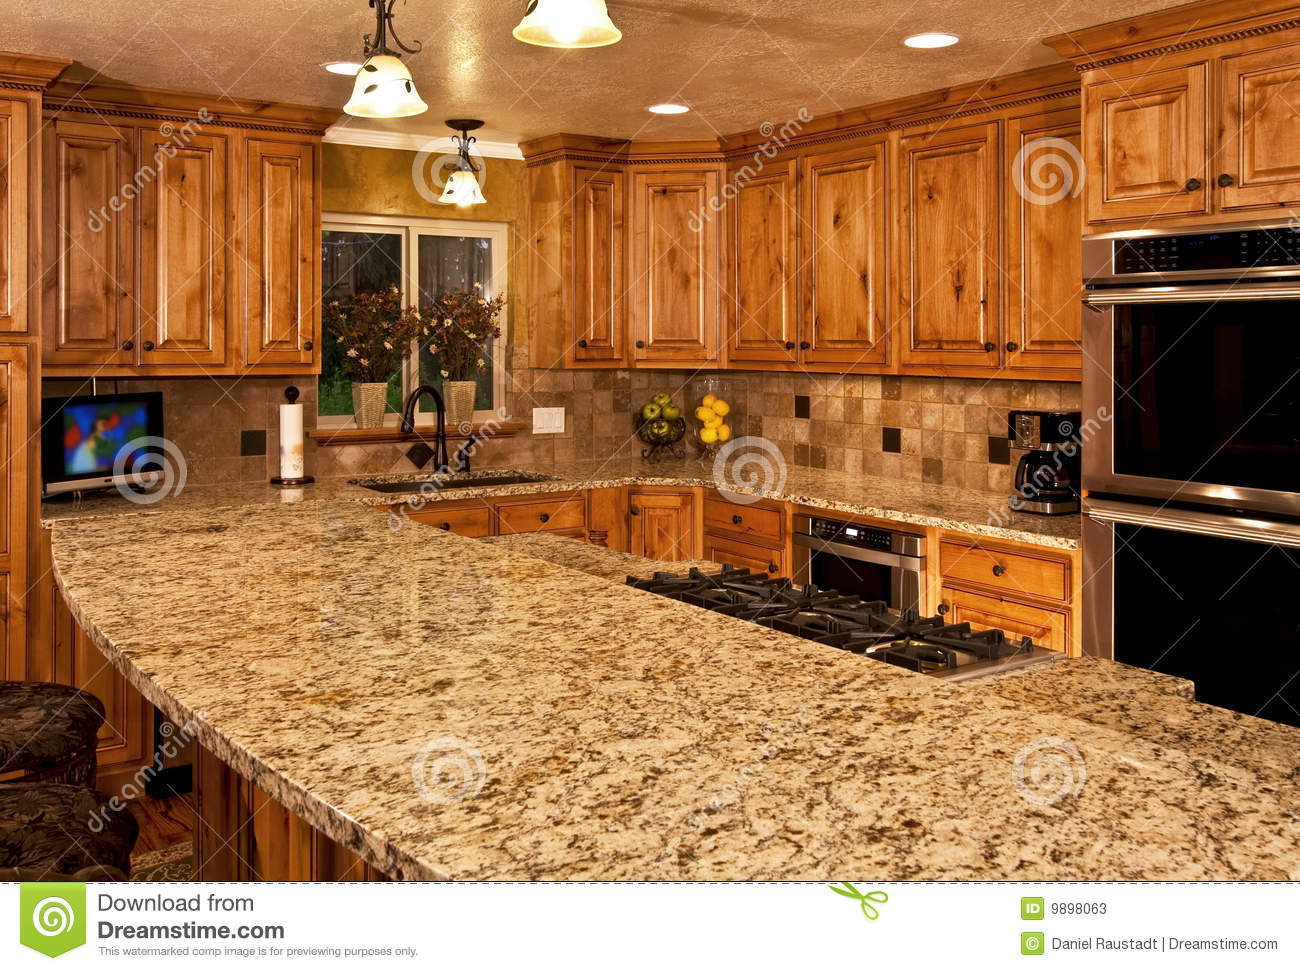 Kitchen With Center Island new kitchen with center island stock photos - image: 9898063